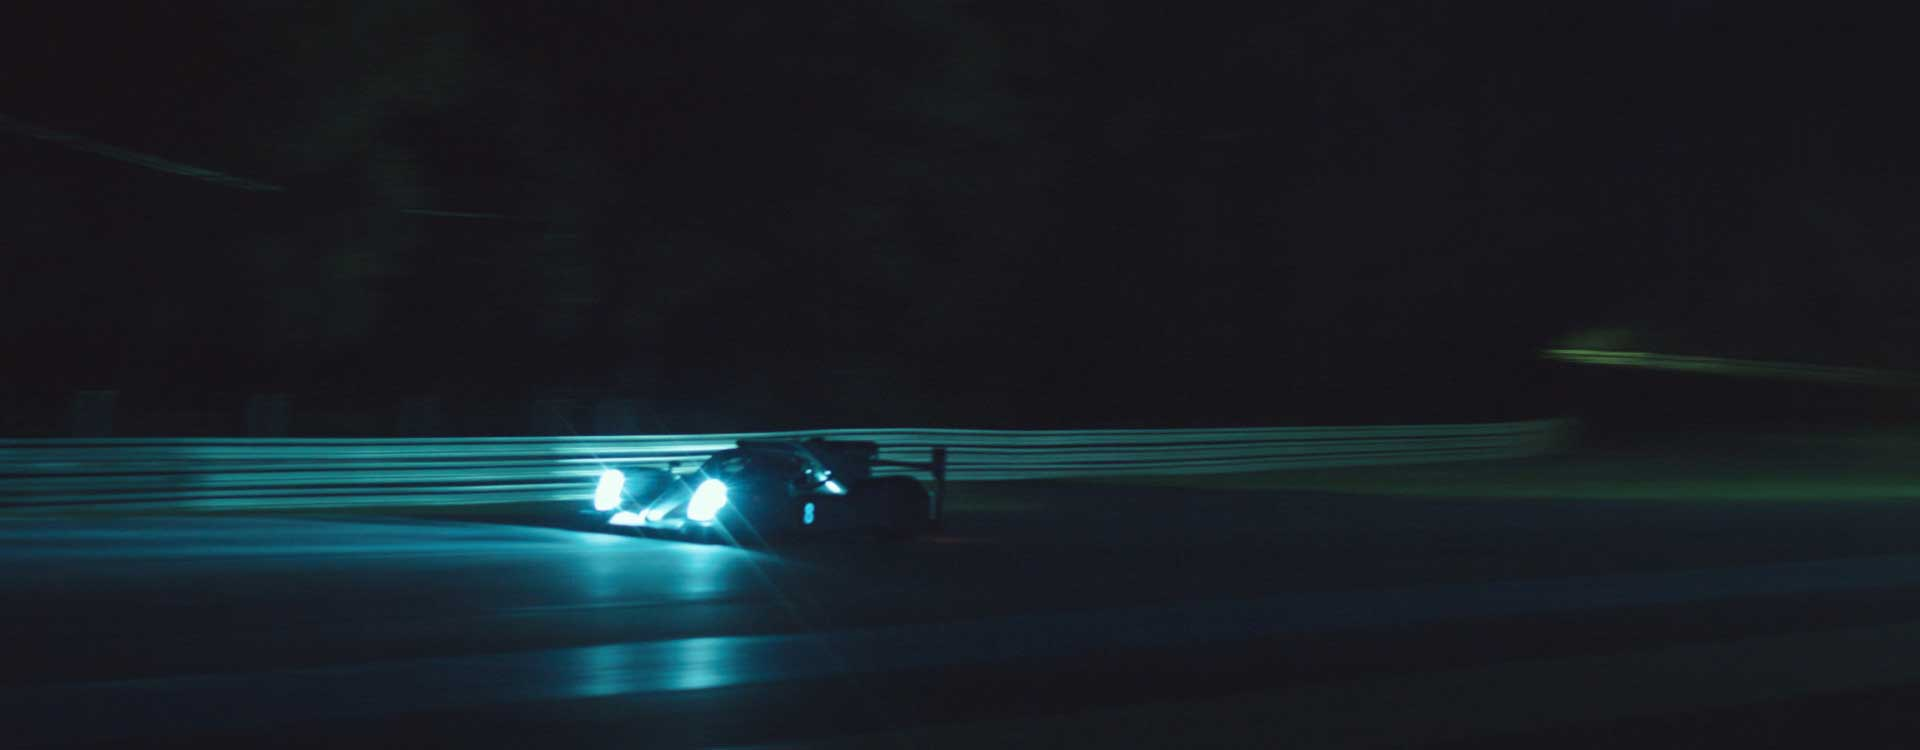 Moving racing car by night. Still from Toyota Hybrid Racing - Commercial Barbeque Design